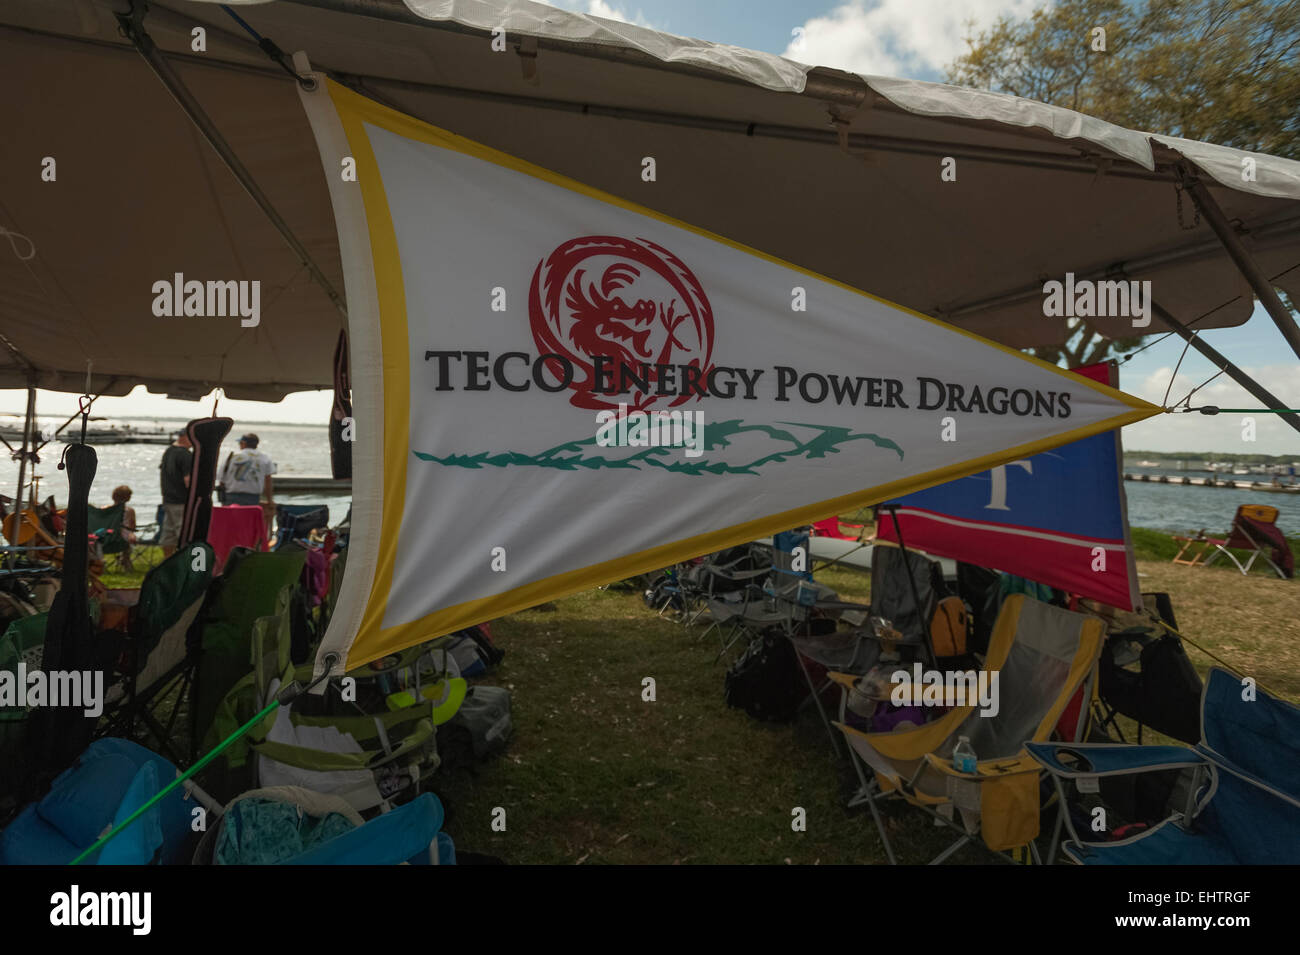 A flying banner at the Dragon Boat Races in Tavares, Florida USA - Stock Image